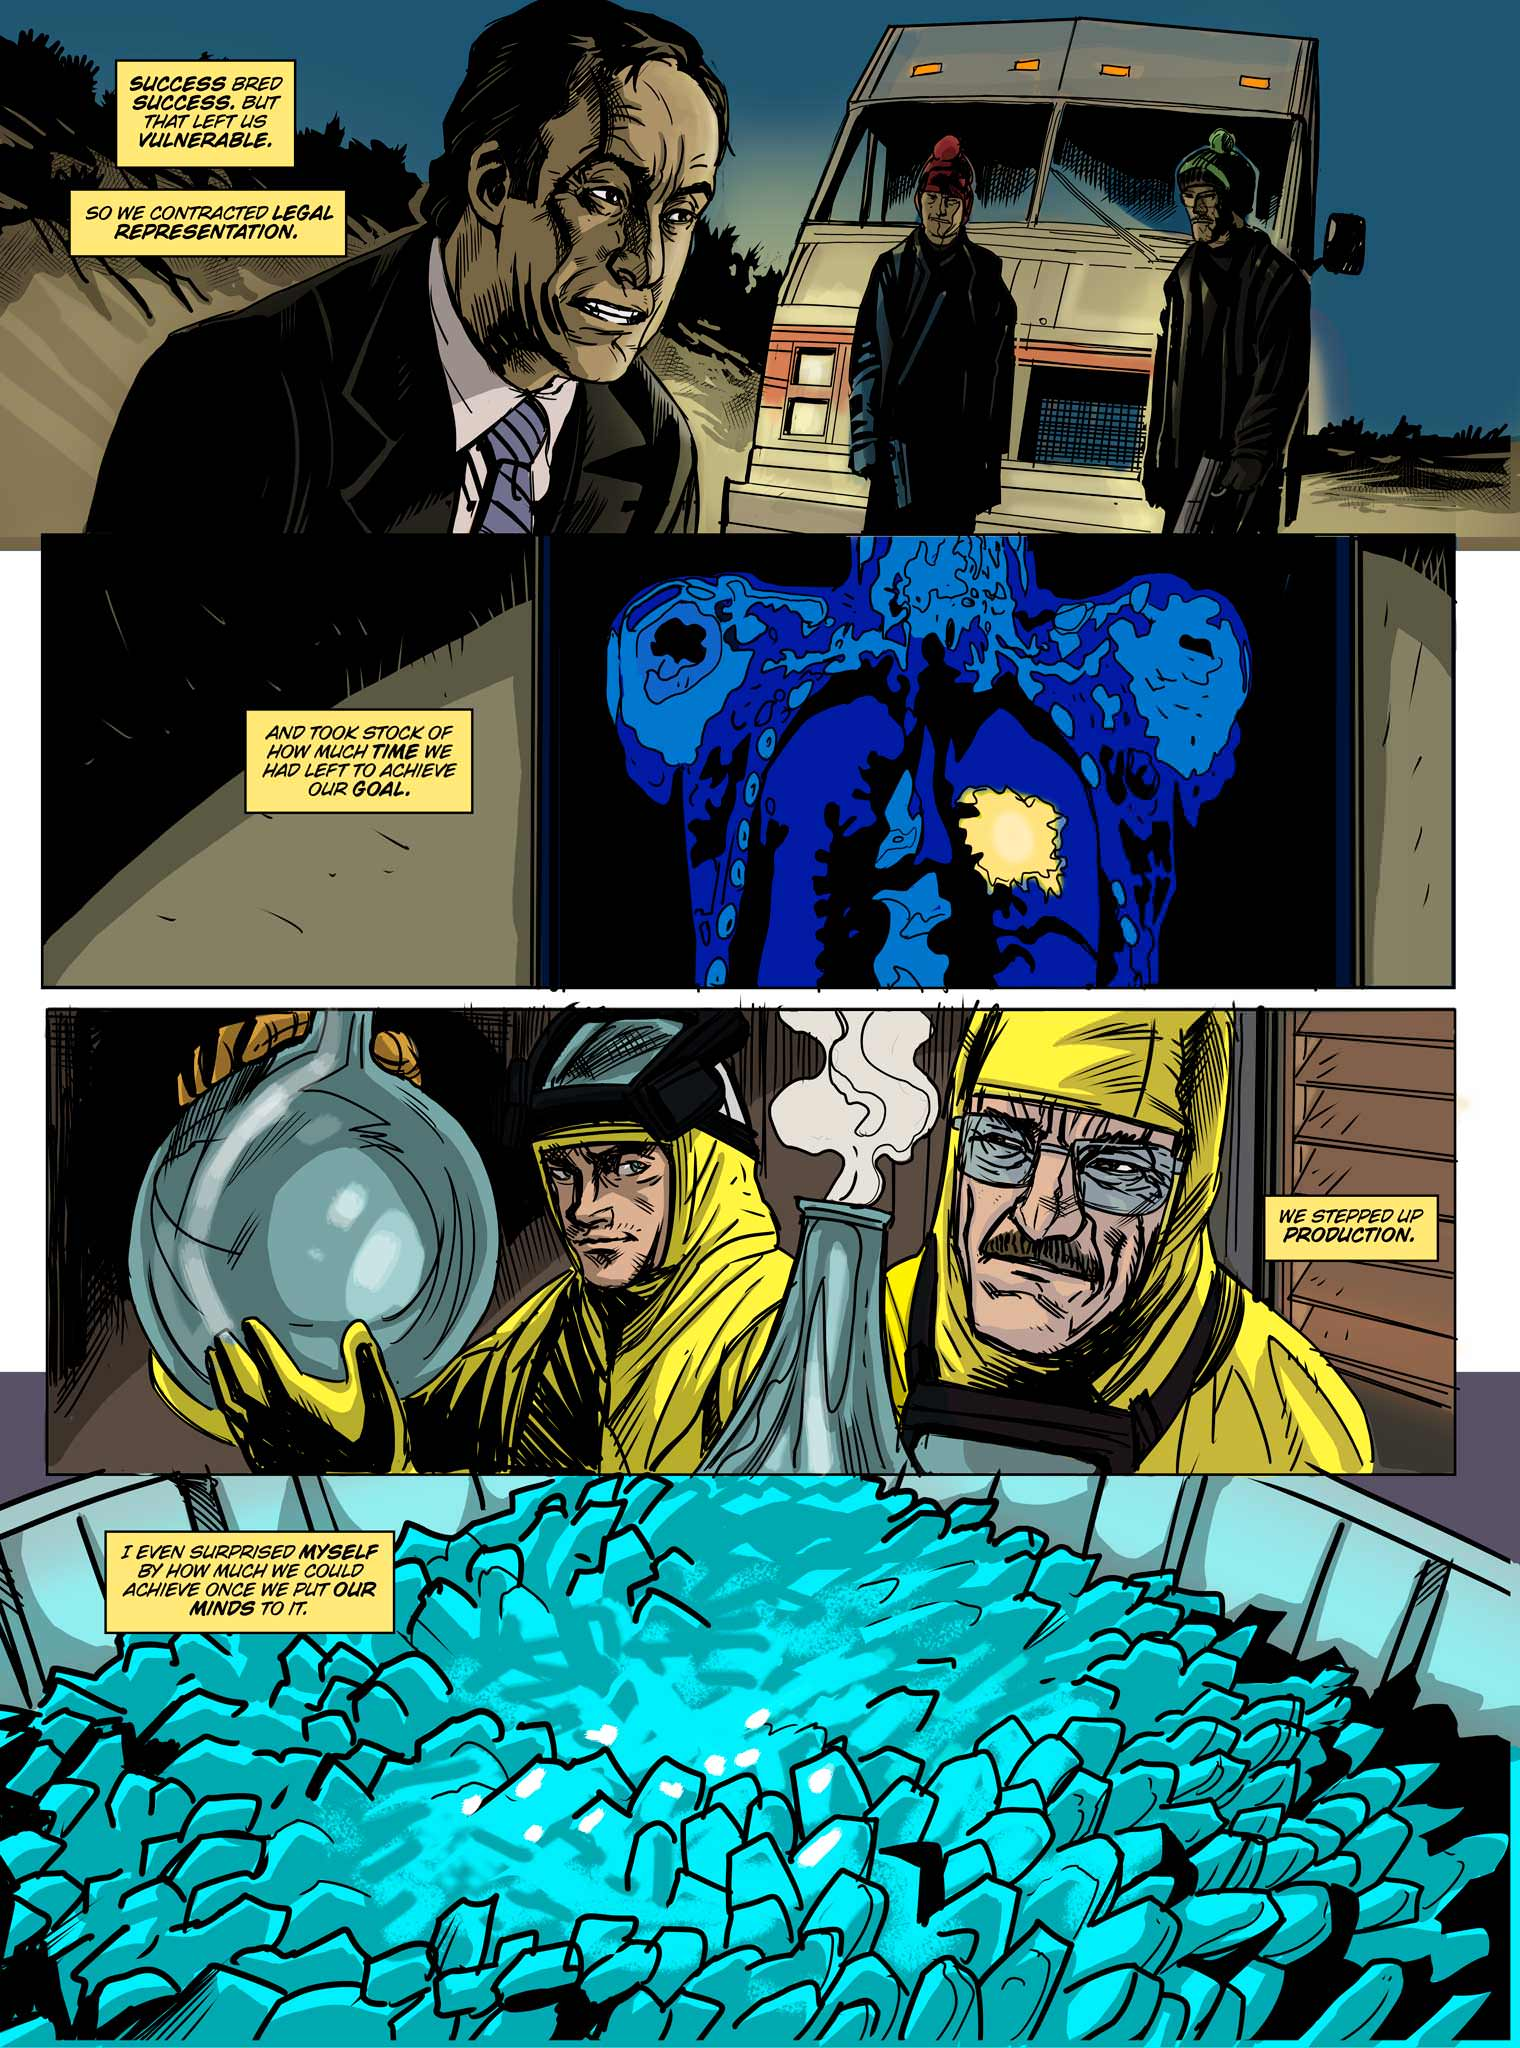 Read online Breaking Bad: All Bad Things comic -  Issue # Full - 7